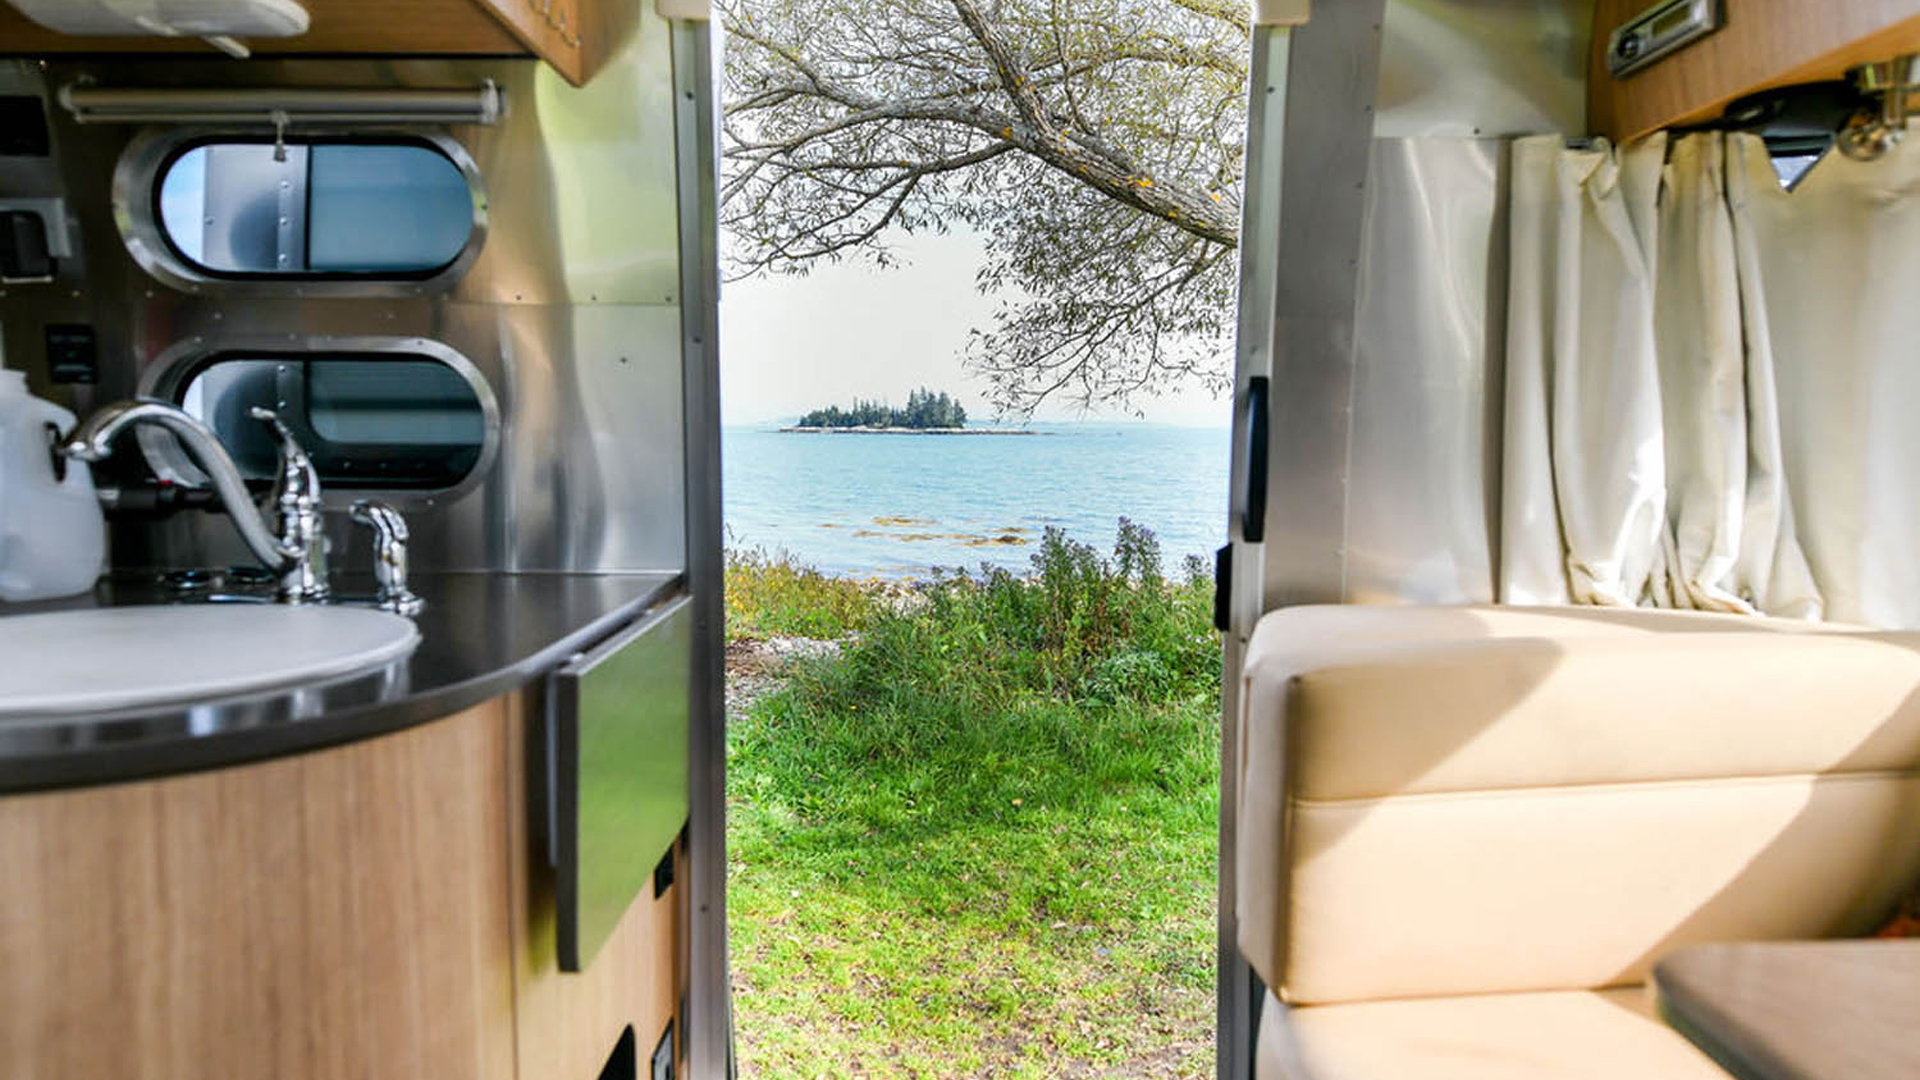 Looking out of an Airstream at a lake in Maine